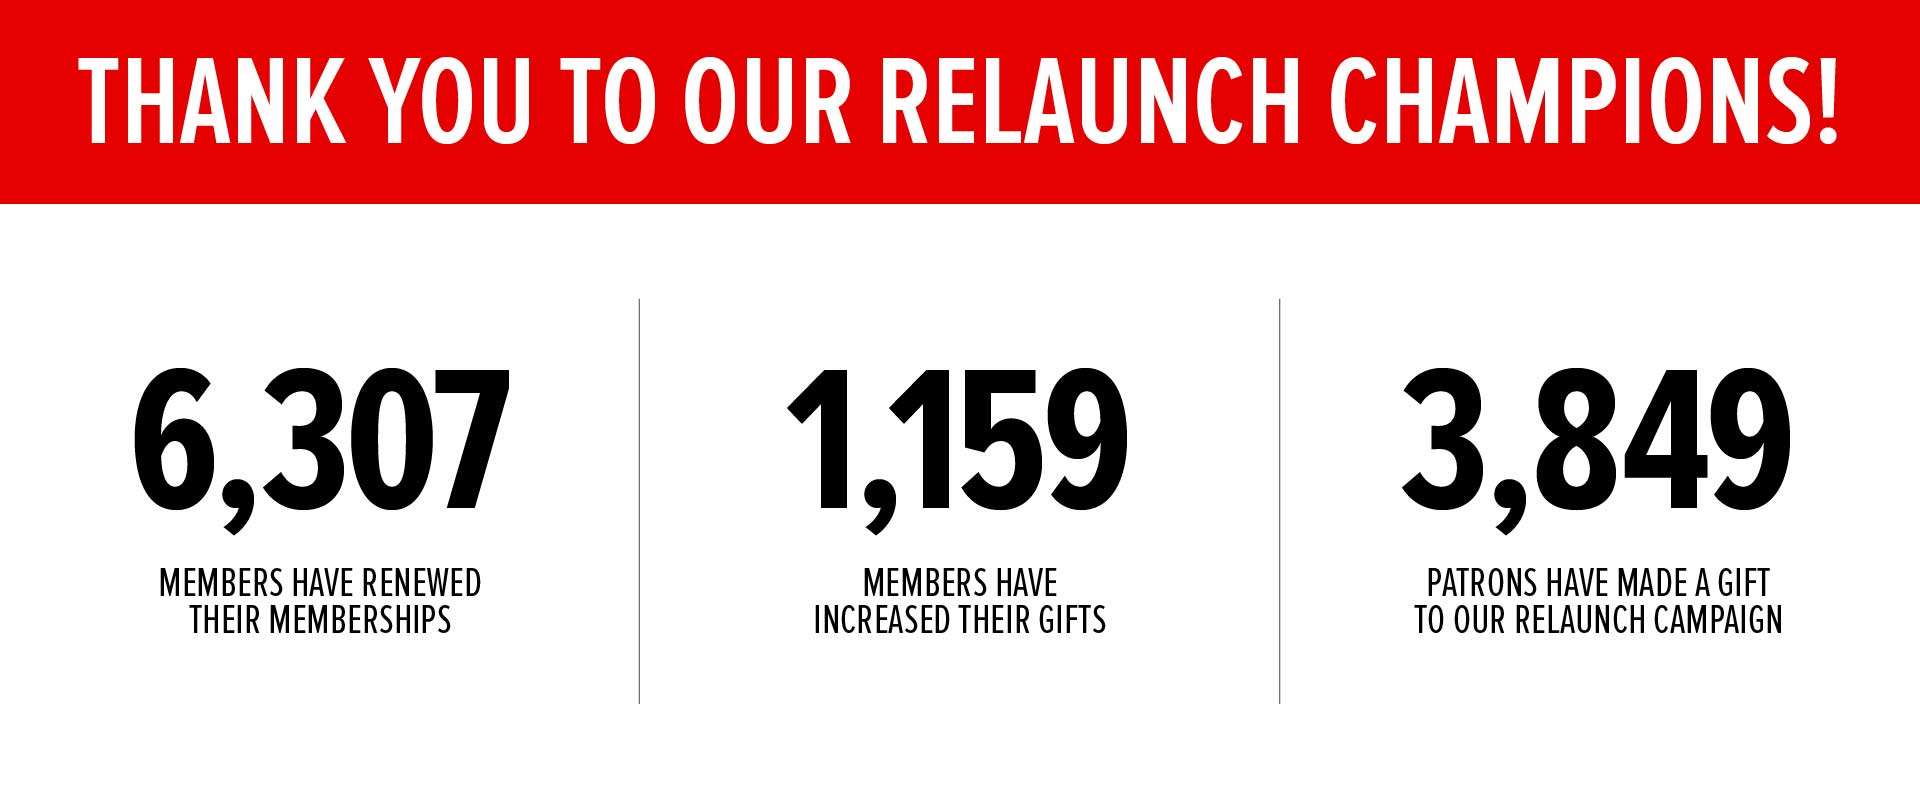 THANK YOU TO OUR RELAUNCH HEROES